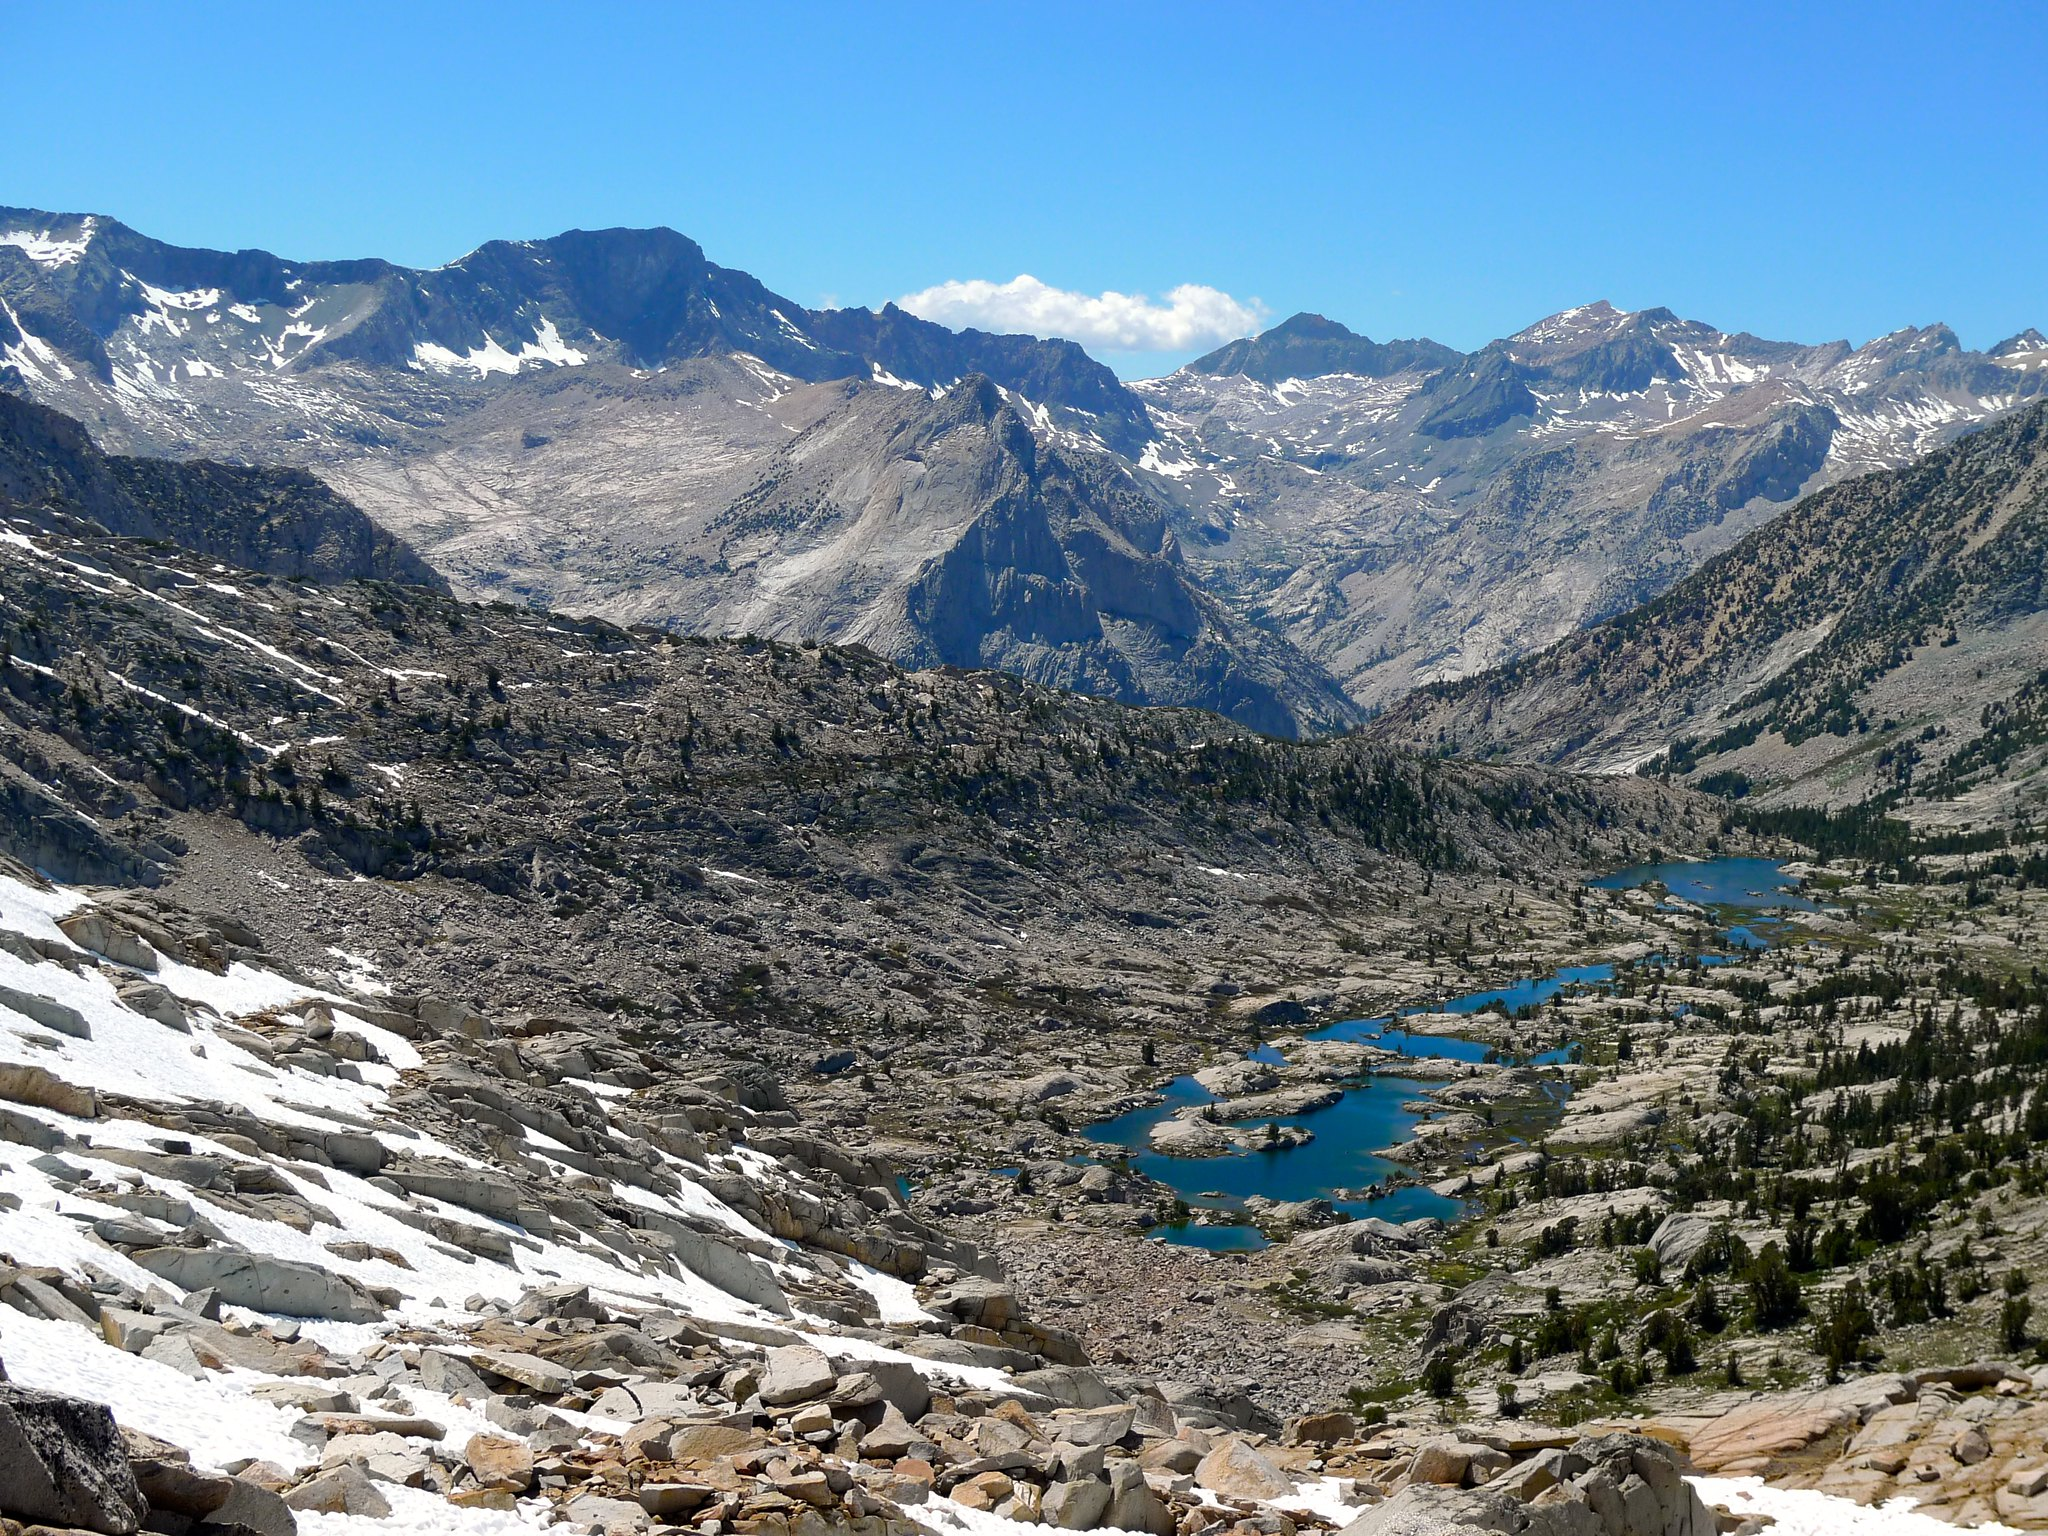 Lower Dusy Basin and peaks across Le Conte Canyon from Knapsack Pass